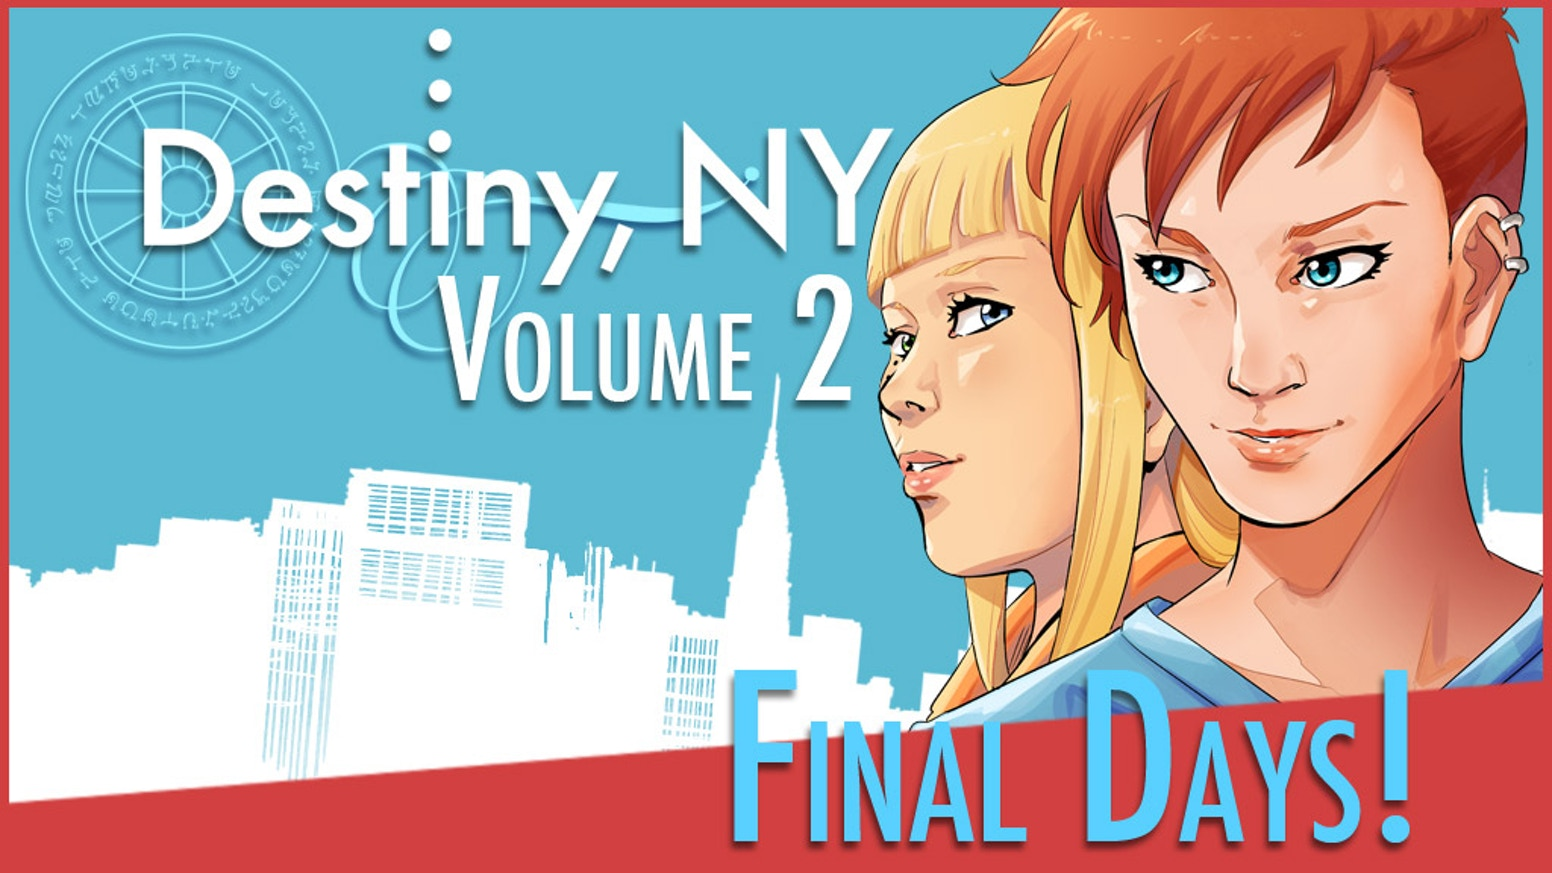 NOW ON AMAZON! Logan McBride was a magical girl with a destiny. Now, she's a 30-year-old New Yorker with rent to pay.